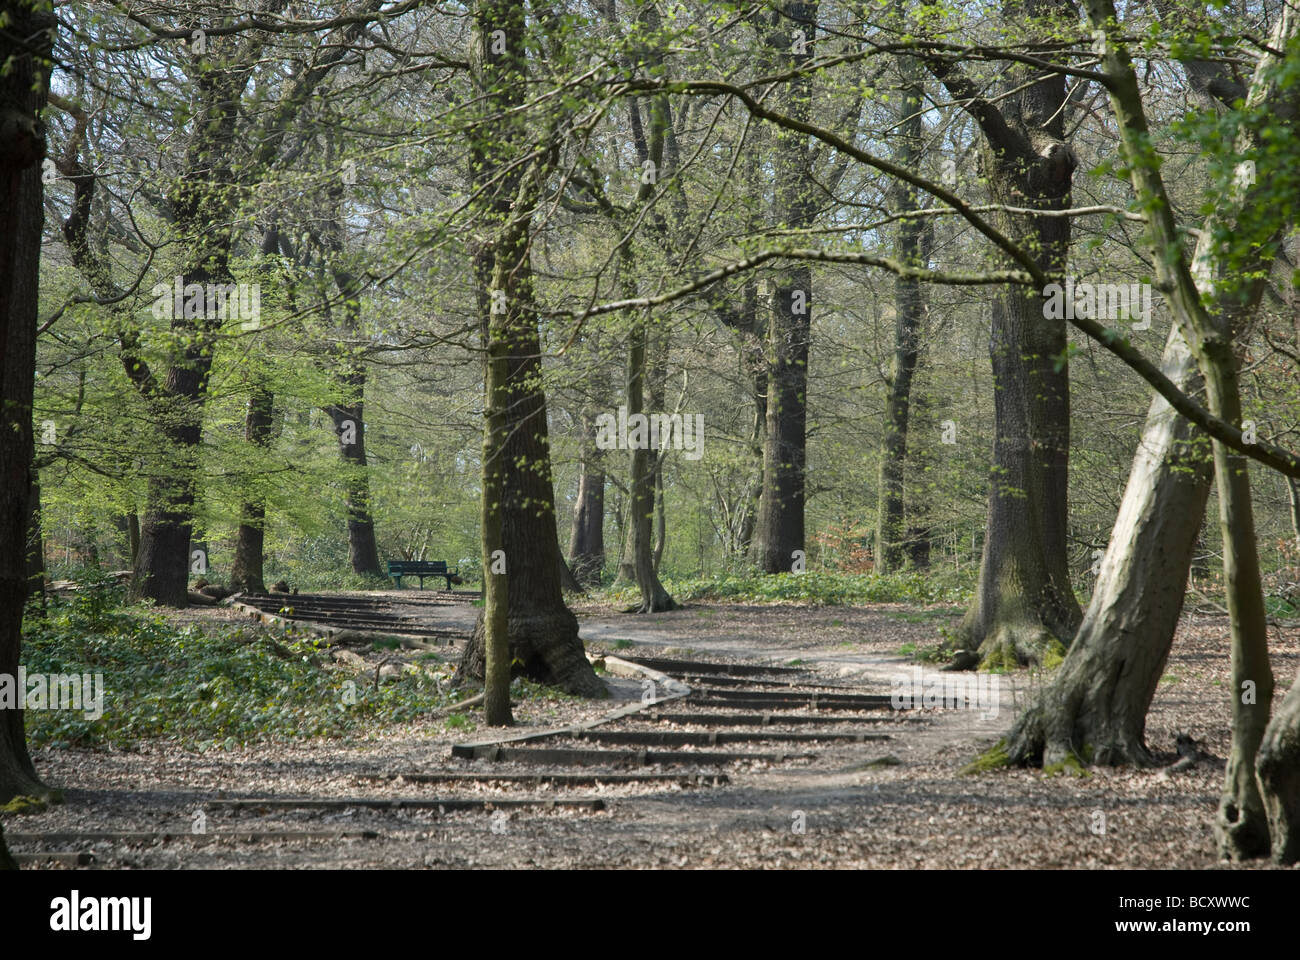 Queen Wood Highgate, North London - Stock Image